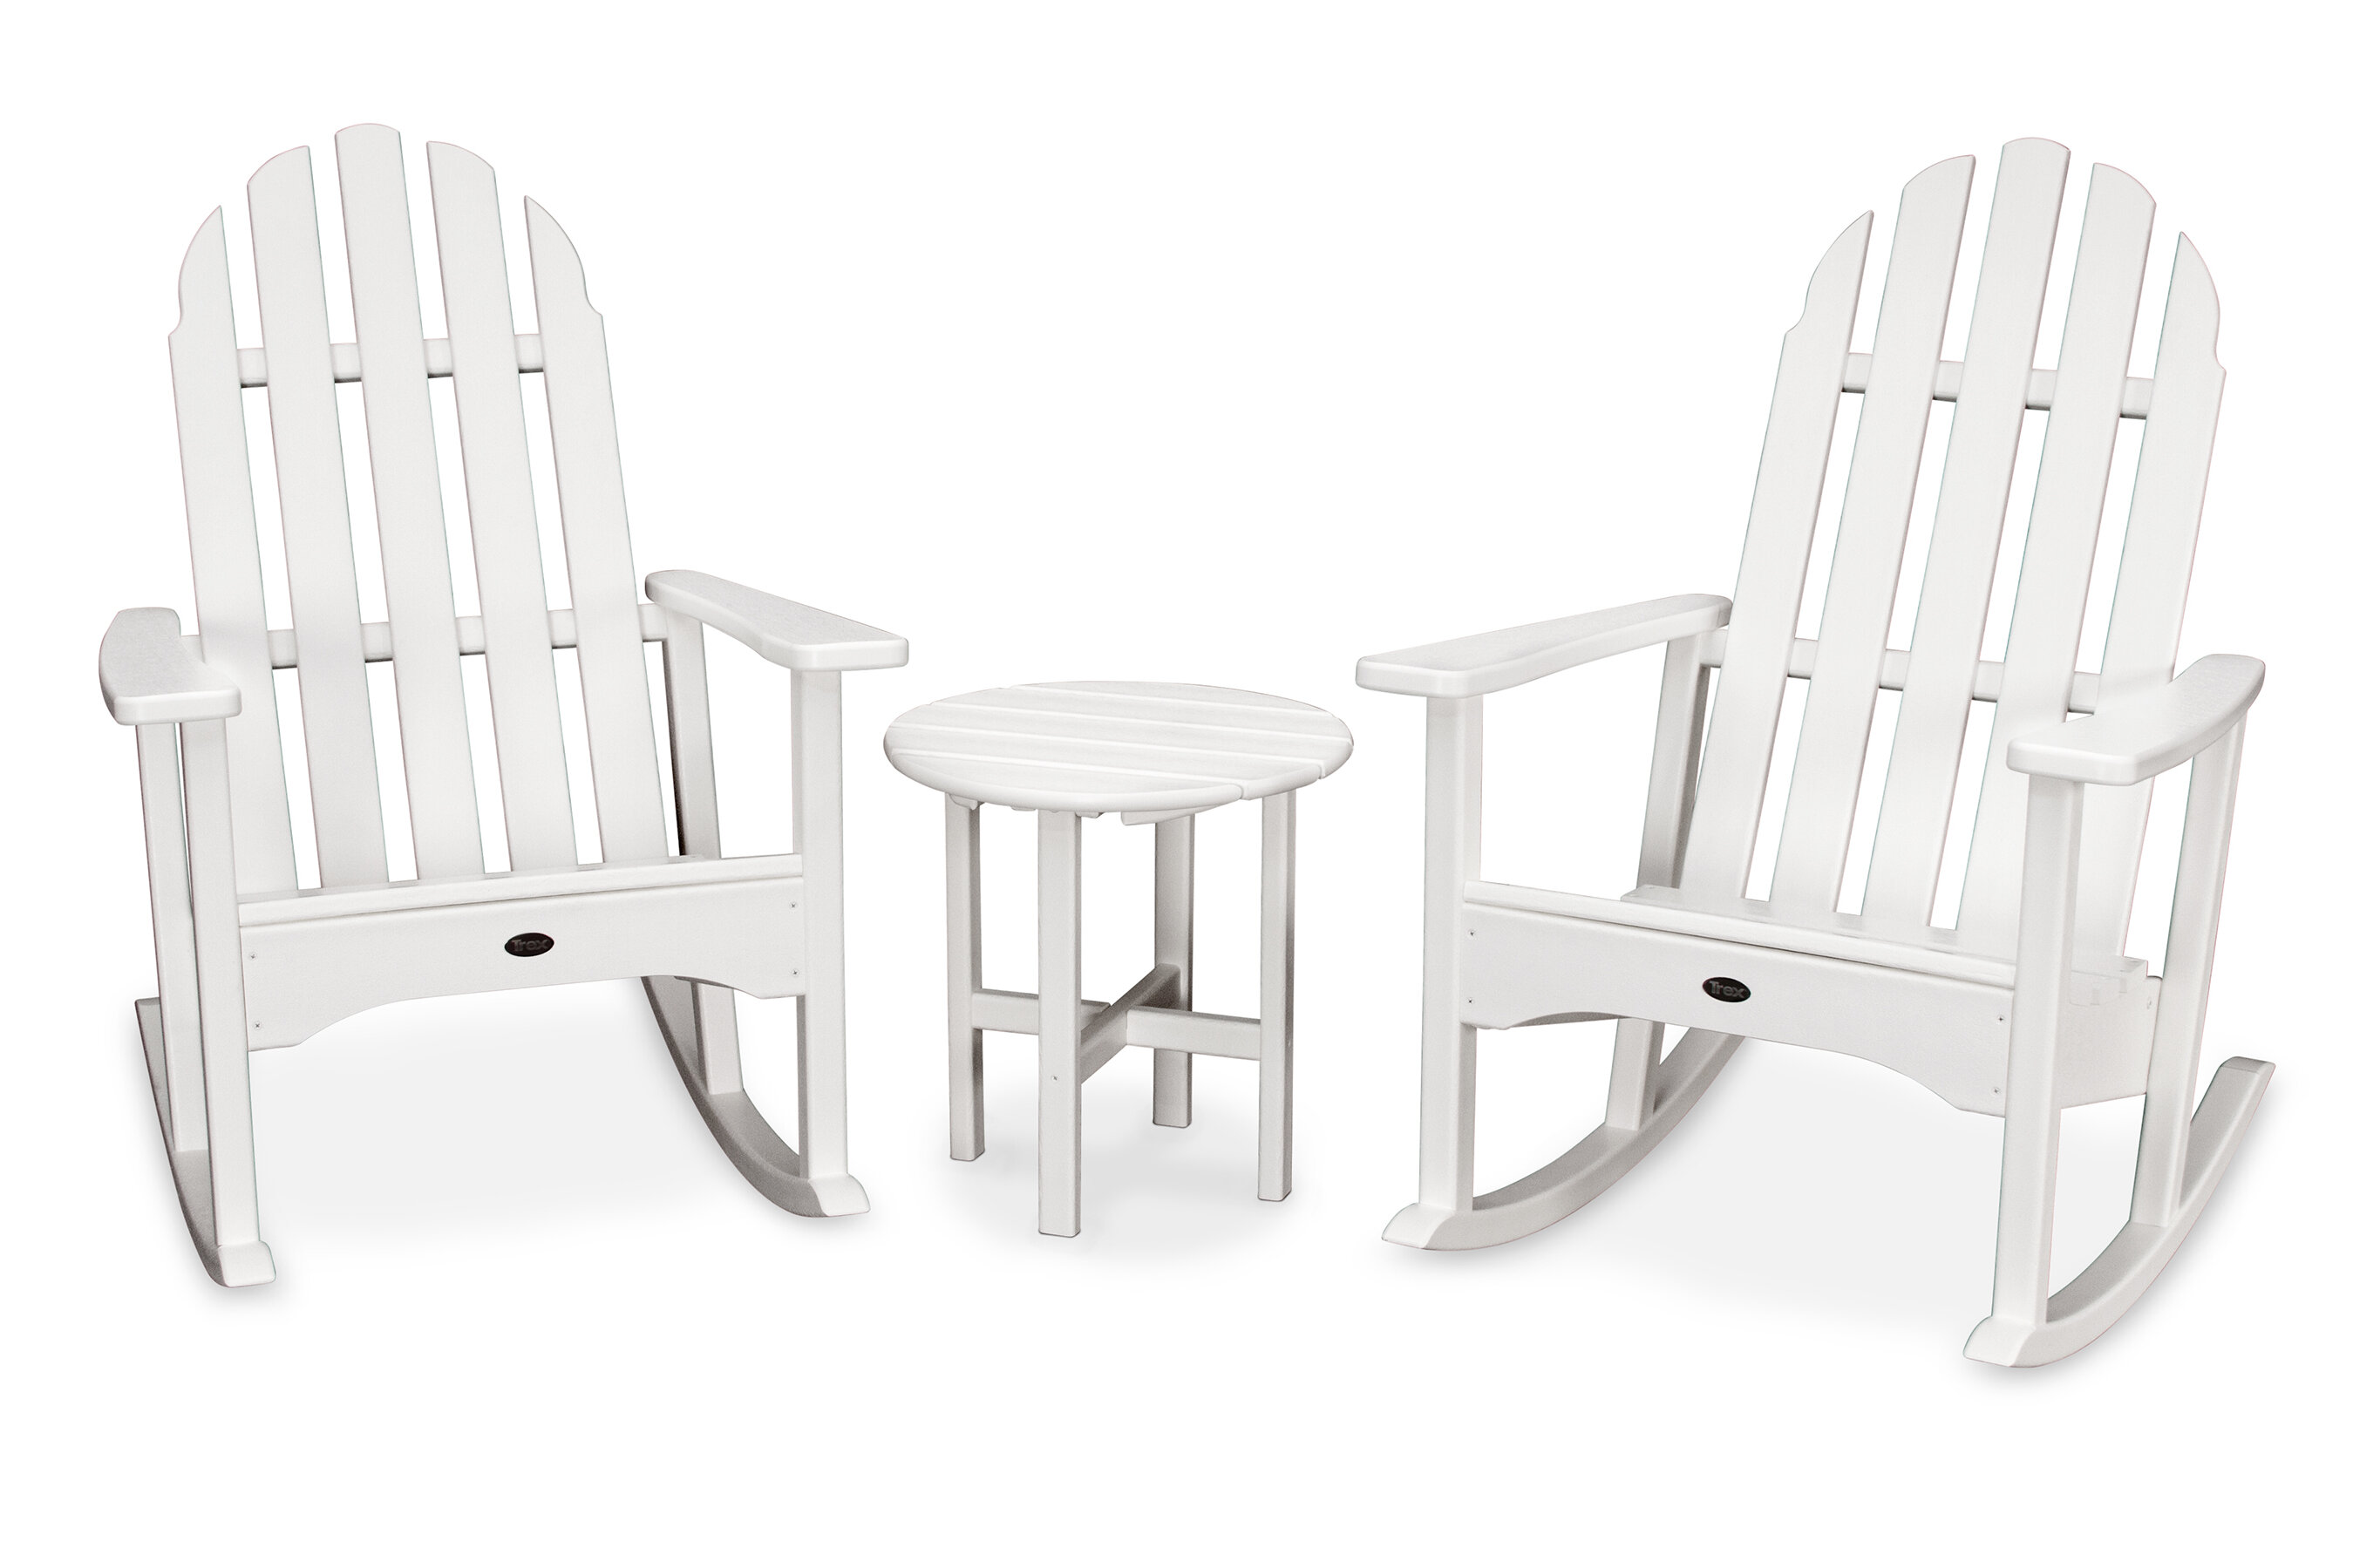 Marvelous Cape Cod Adirondack Rocker Set Creativecarmelina Interior Chair Design Creativecarmelinacom